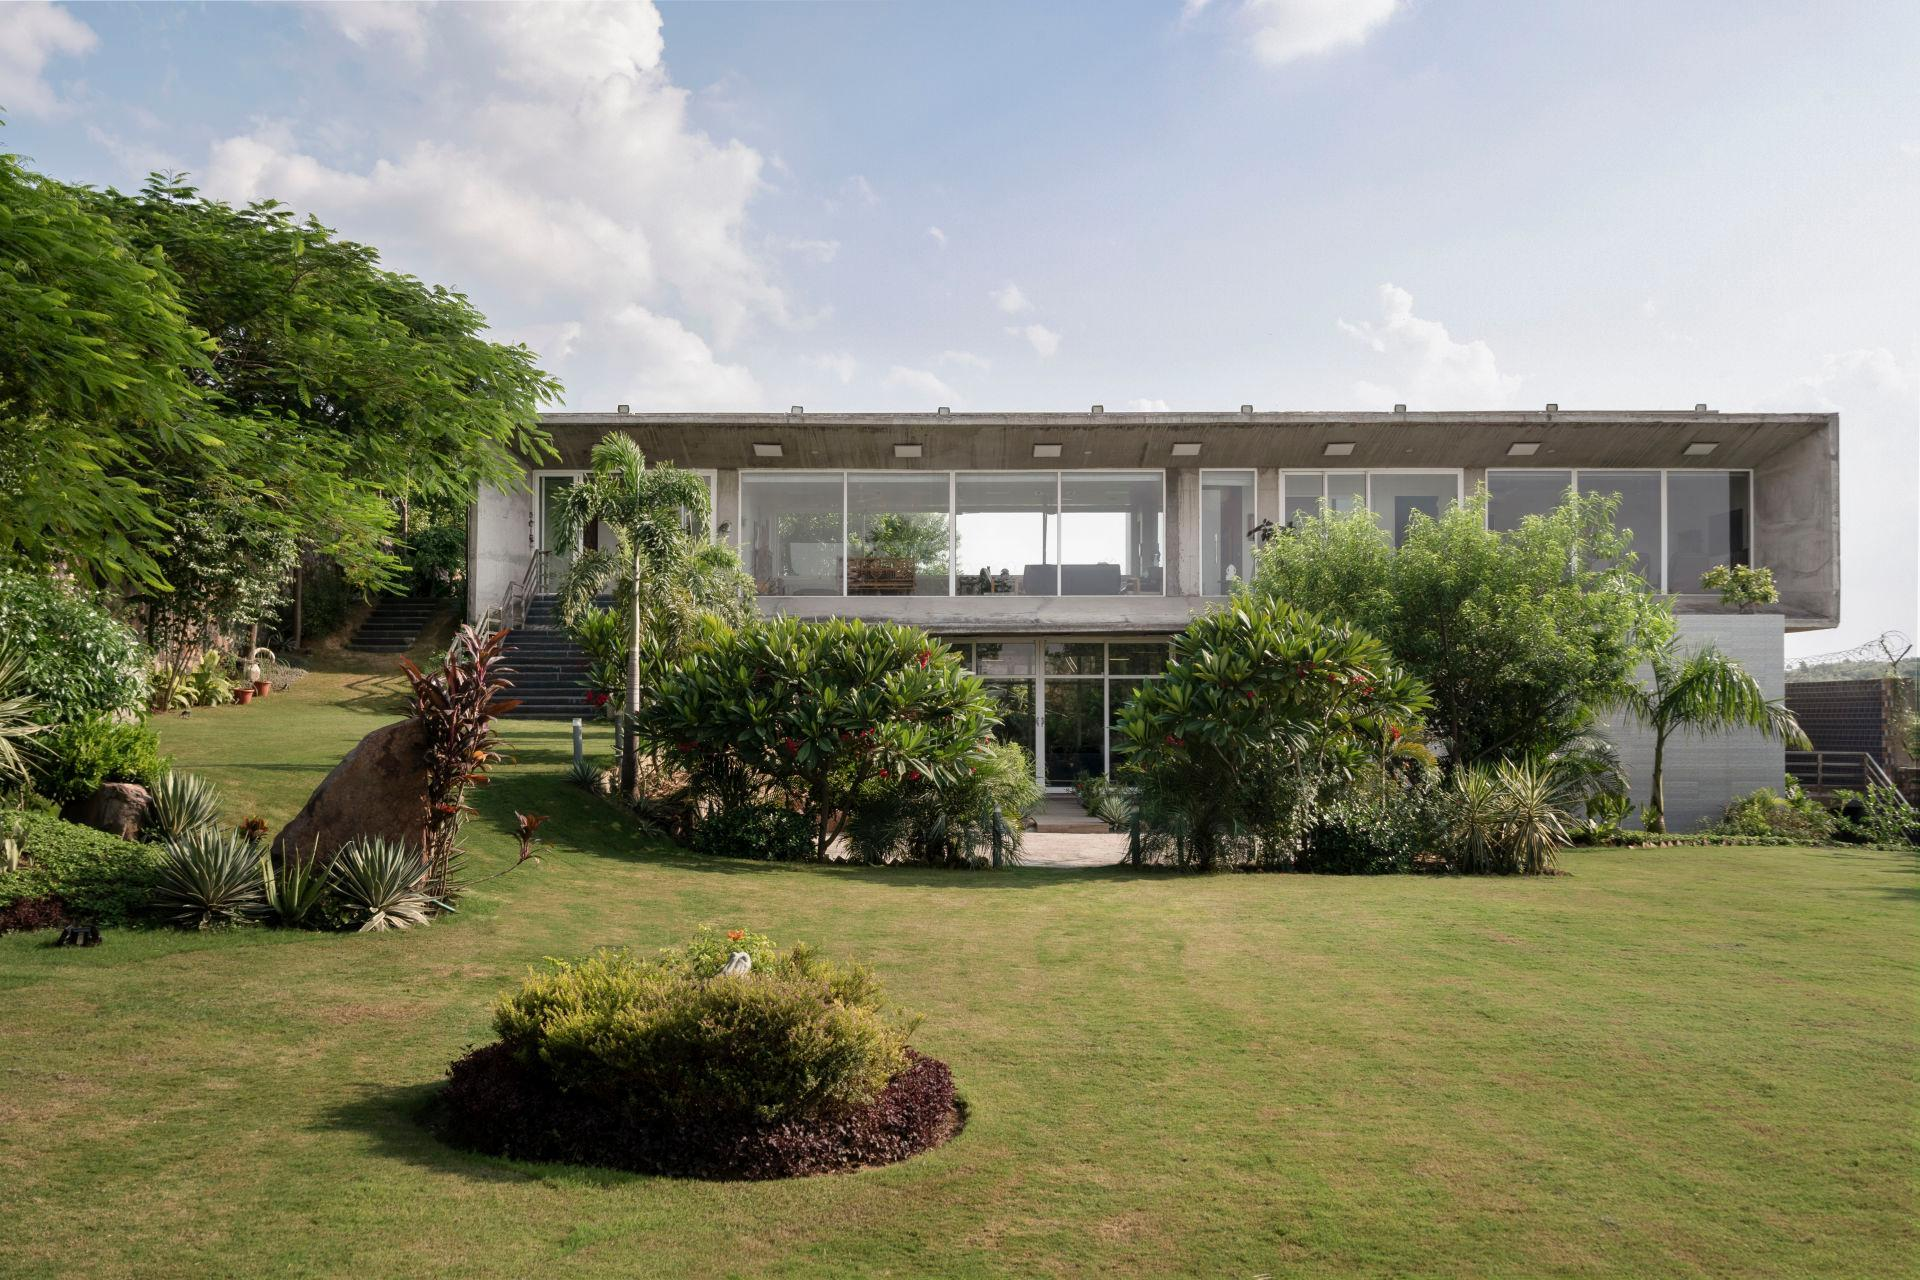 3 BR Bungalow In A Serene Locality 74392